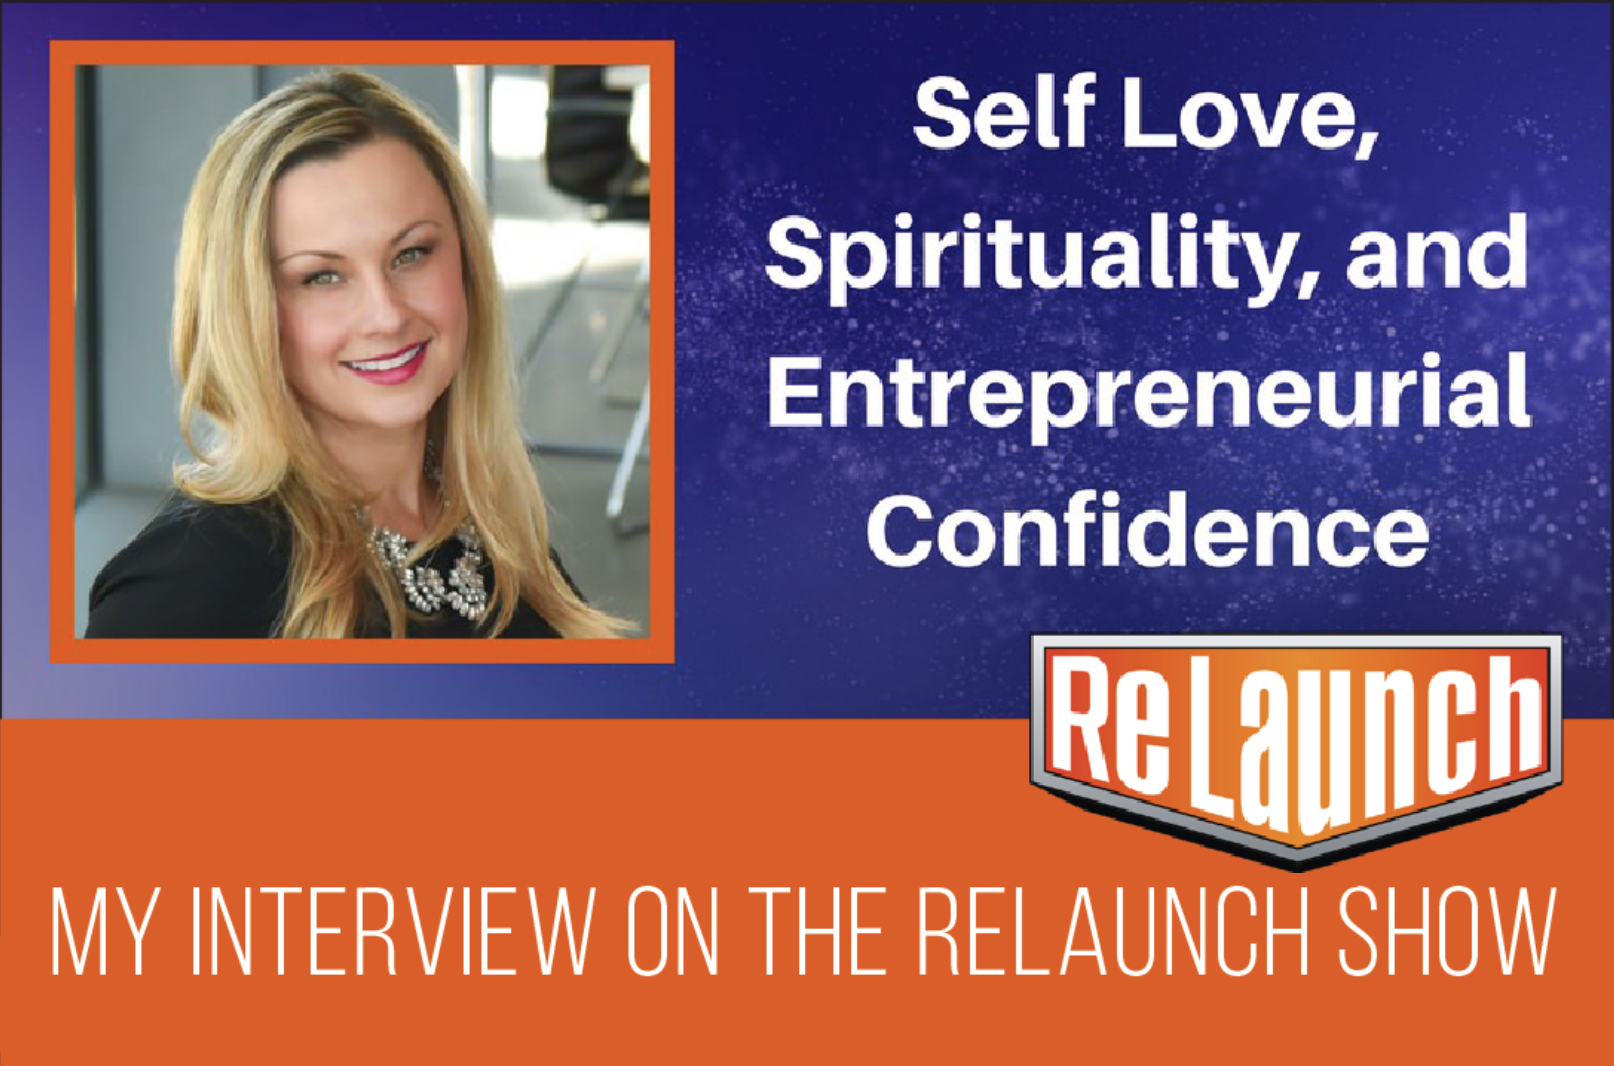 SELF LOVE, SPIRITUALITY & ENTREPRENEURIAL CONFIDENCE